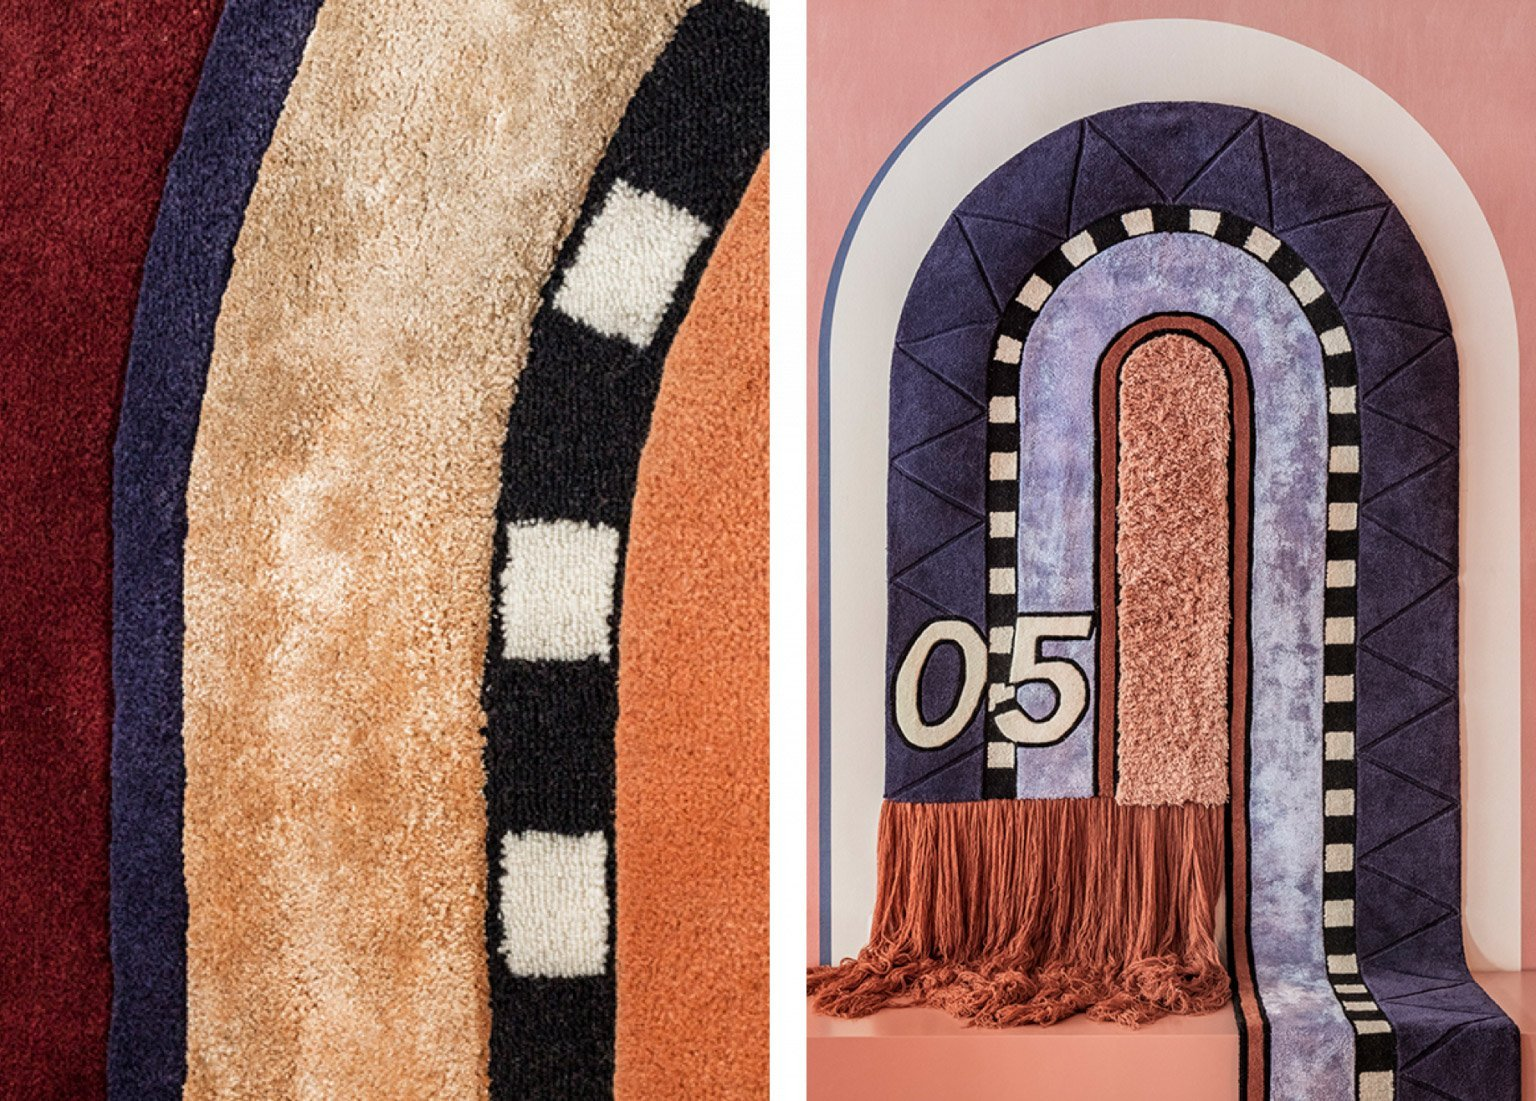 Tapestry Rugs by Moniomi Design